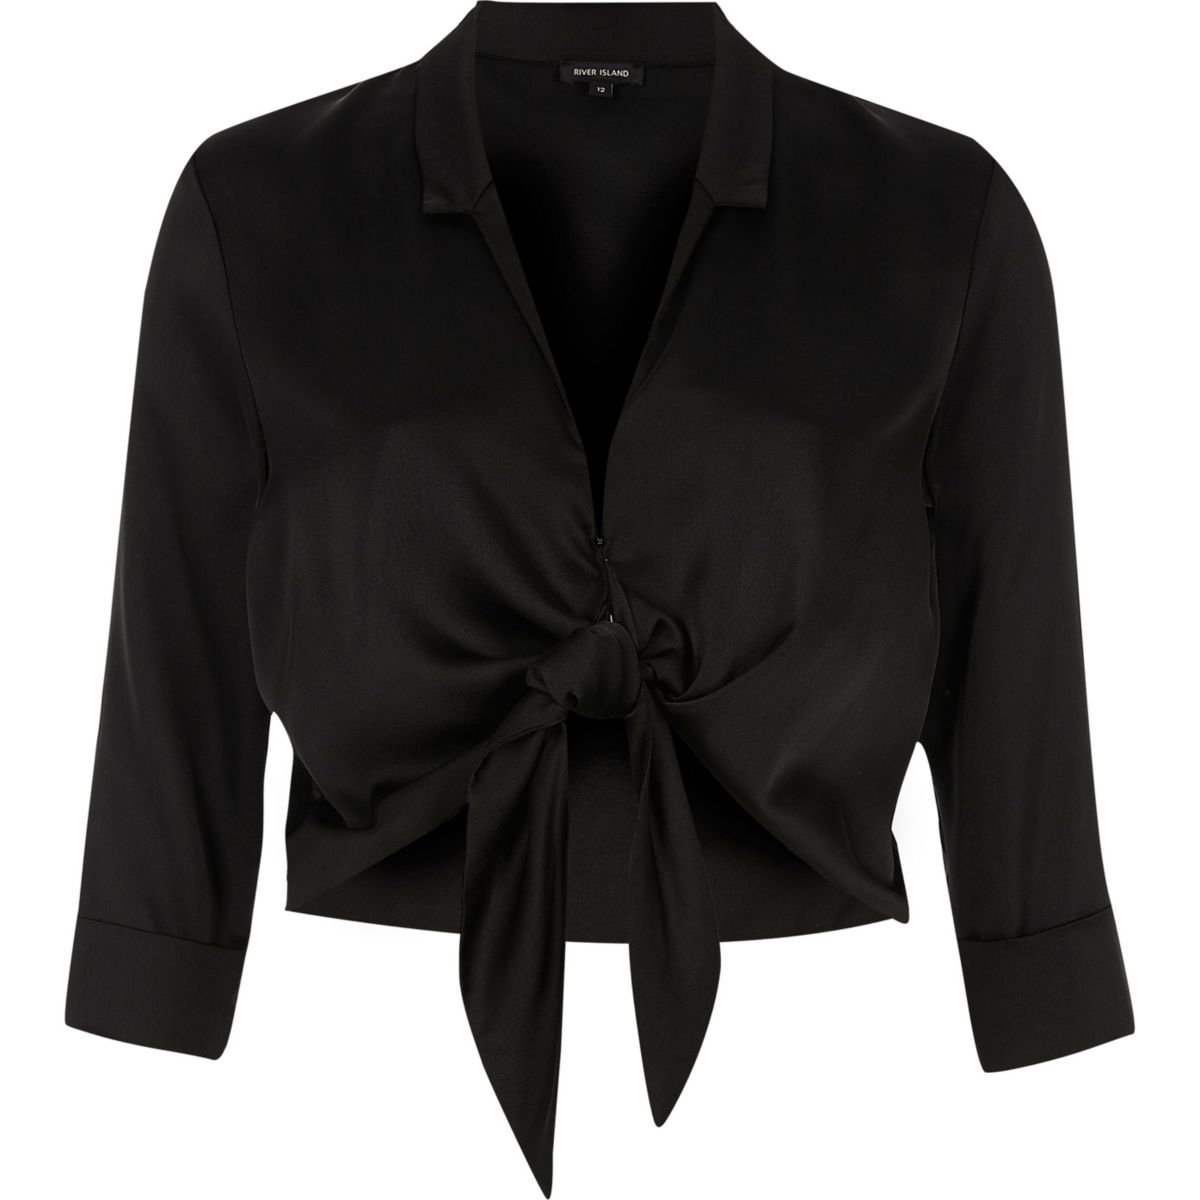 Black satin tie front cropped shirt